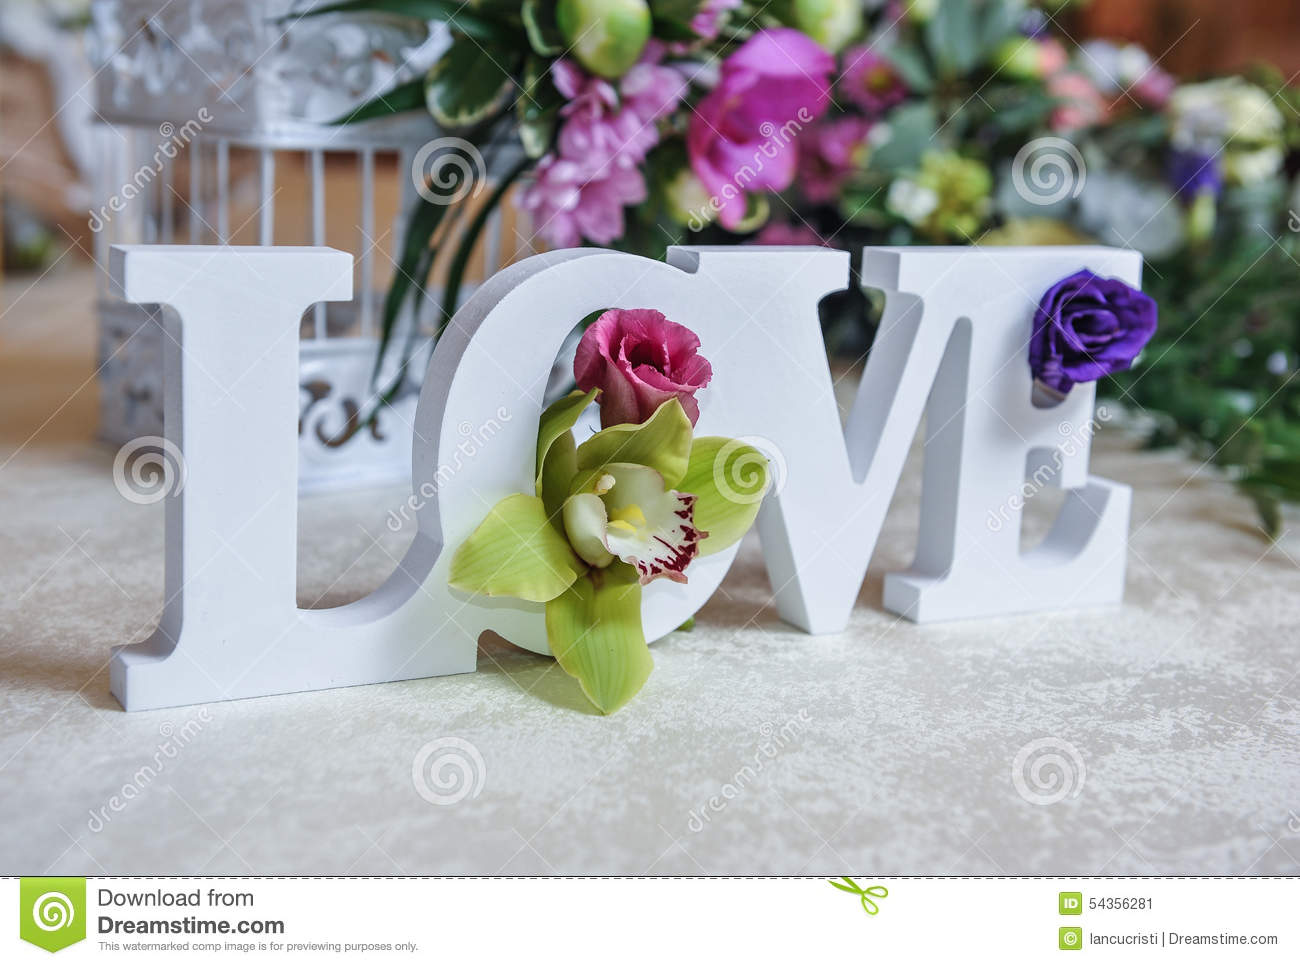 Wedding Decor LOVE Letters And Flowers On Table Fresh Flowers And LOVE Decoration On Festive